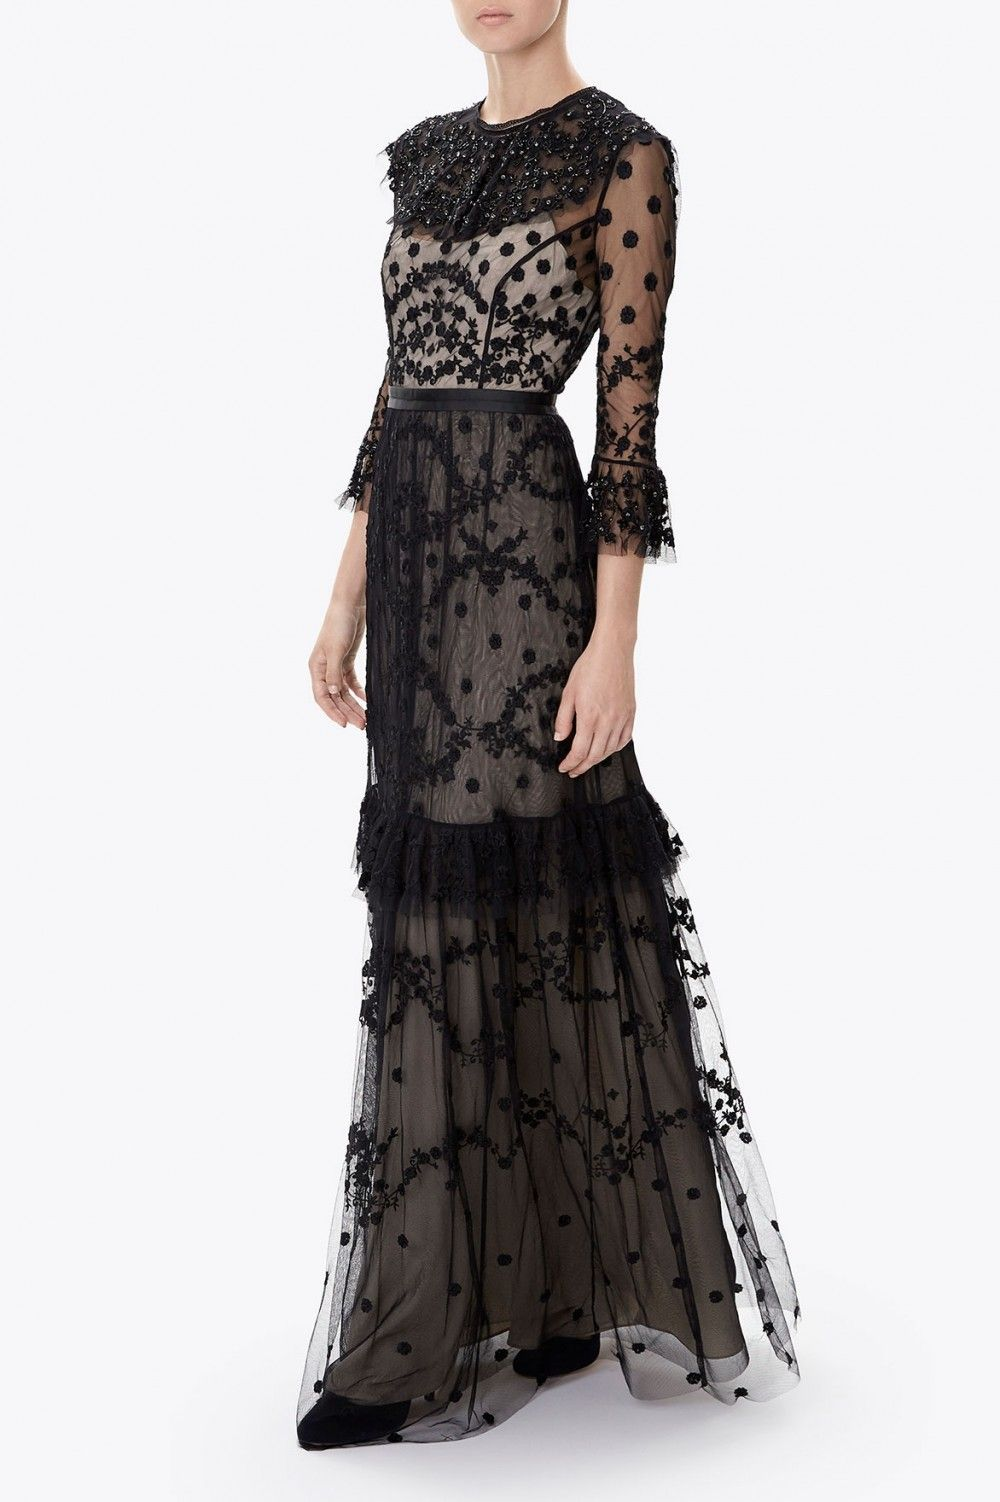 Channel an ethereal style in the shadow lace gown finished in black